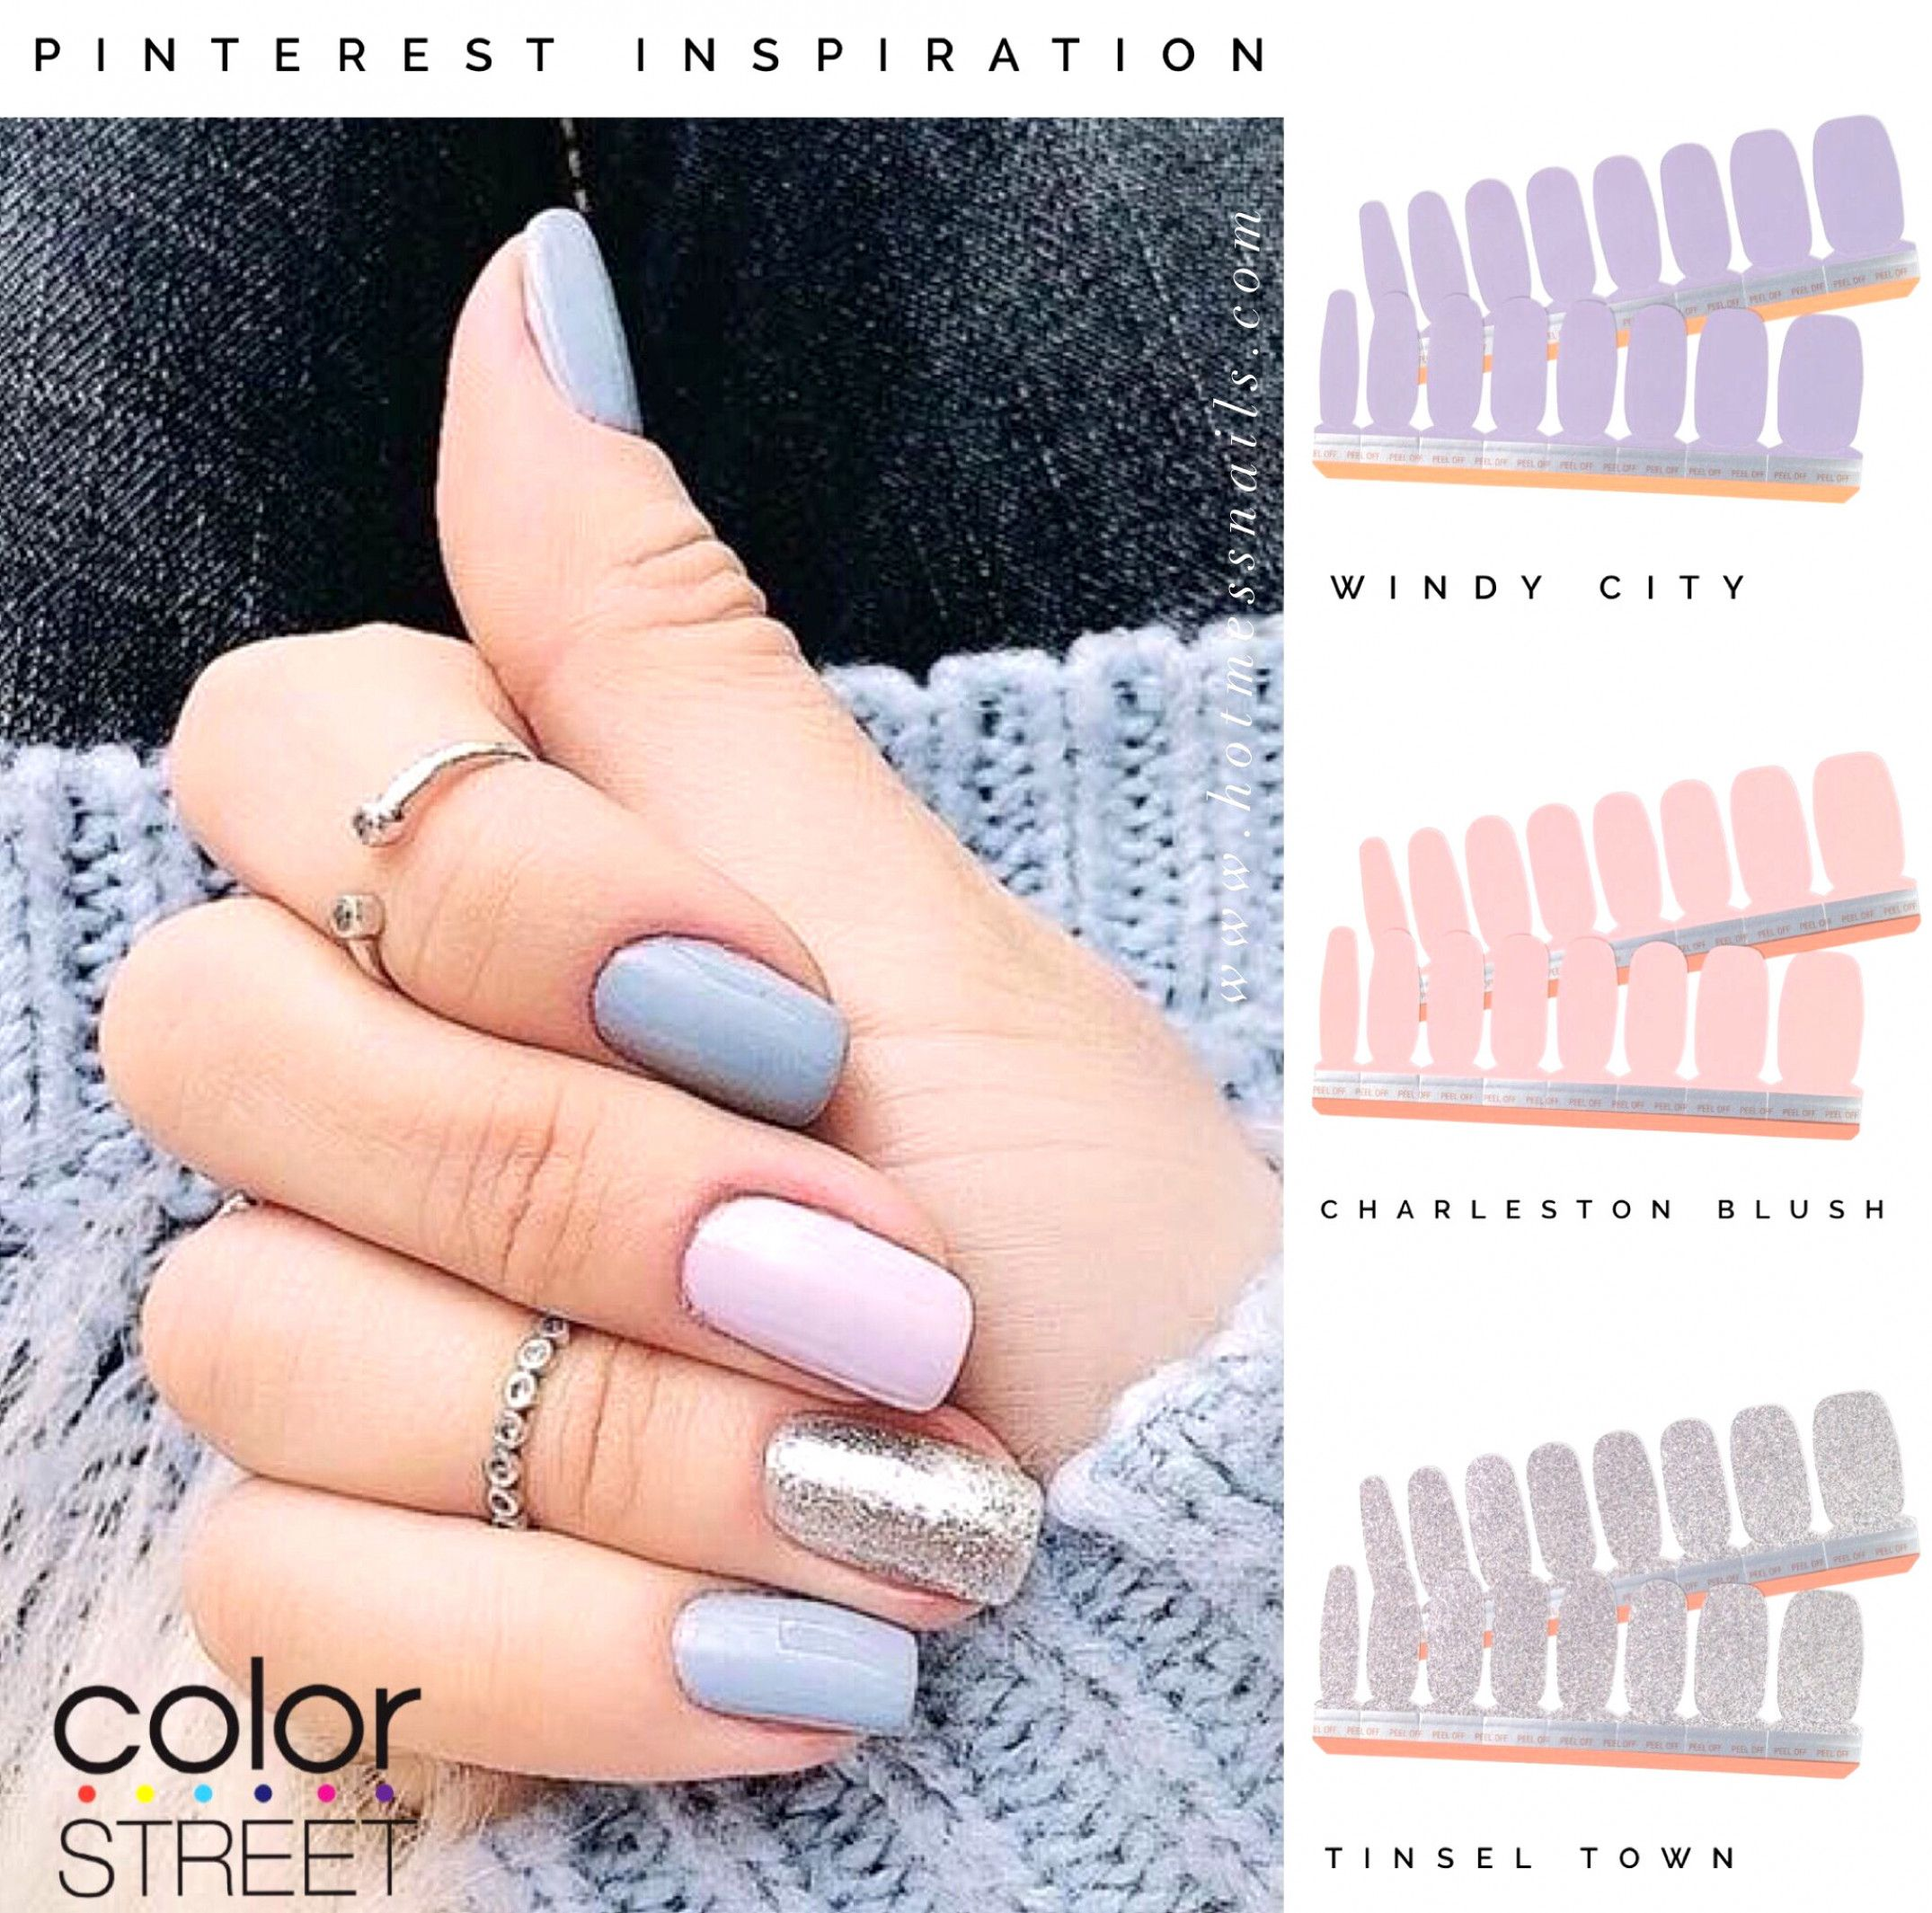 Use These Shades To Create At Home Manicure With 100 Dry Nail Polish For A Fraction Of The Cost Becolorstreet Color Street Nails Dry Nails Dry Nail Polish